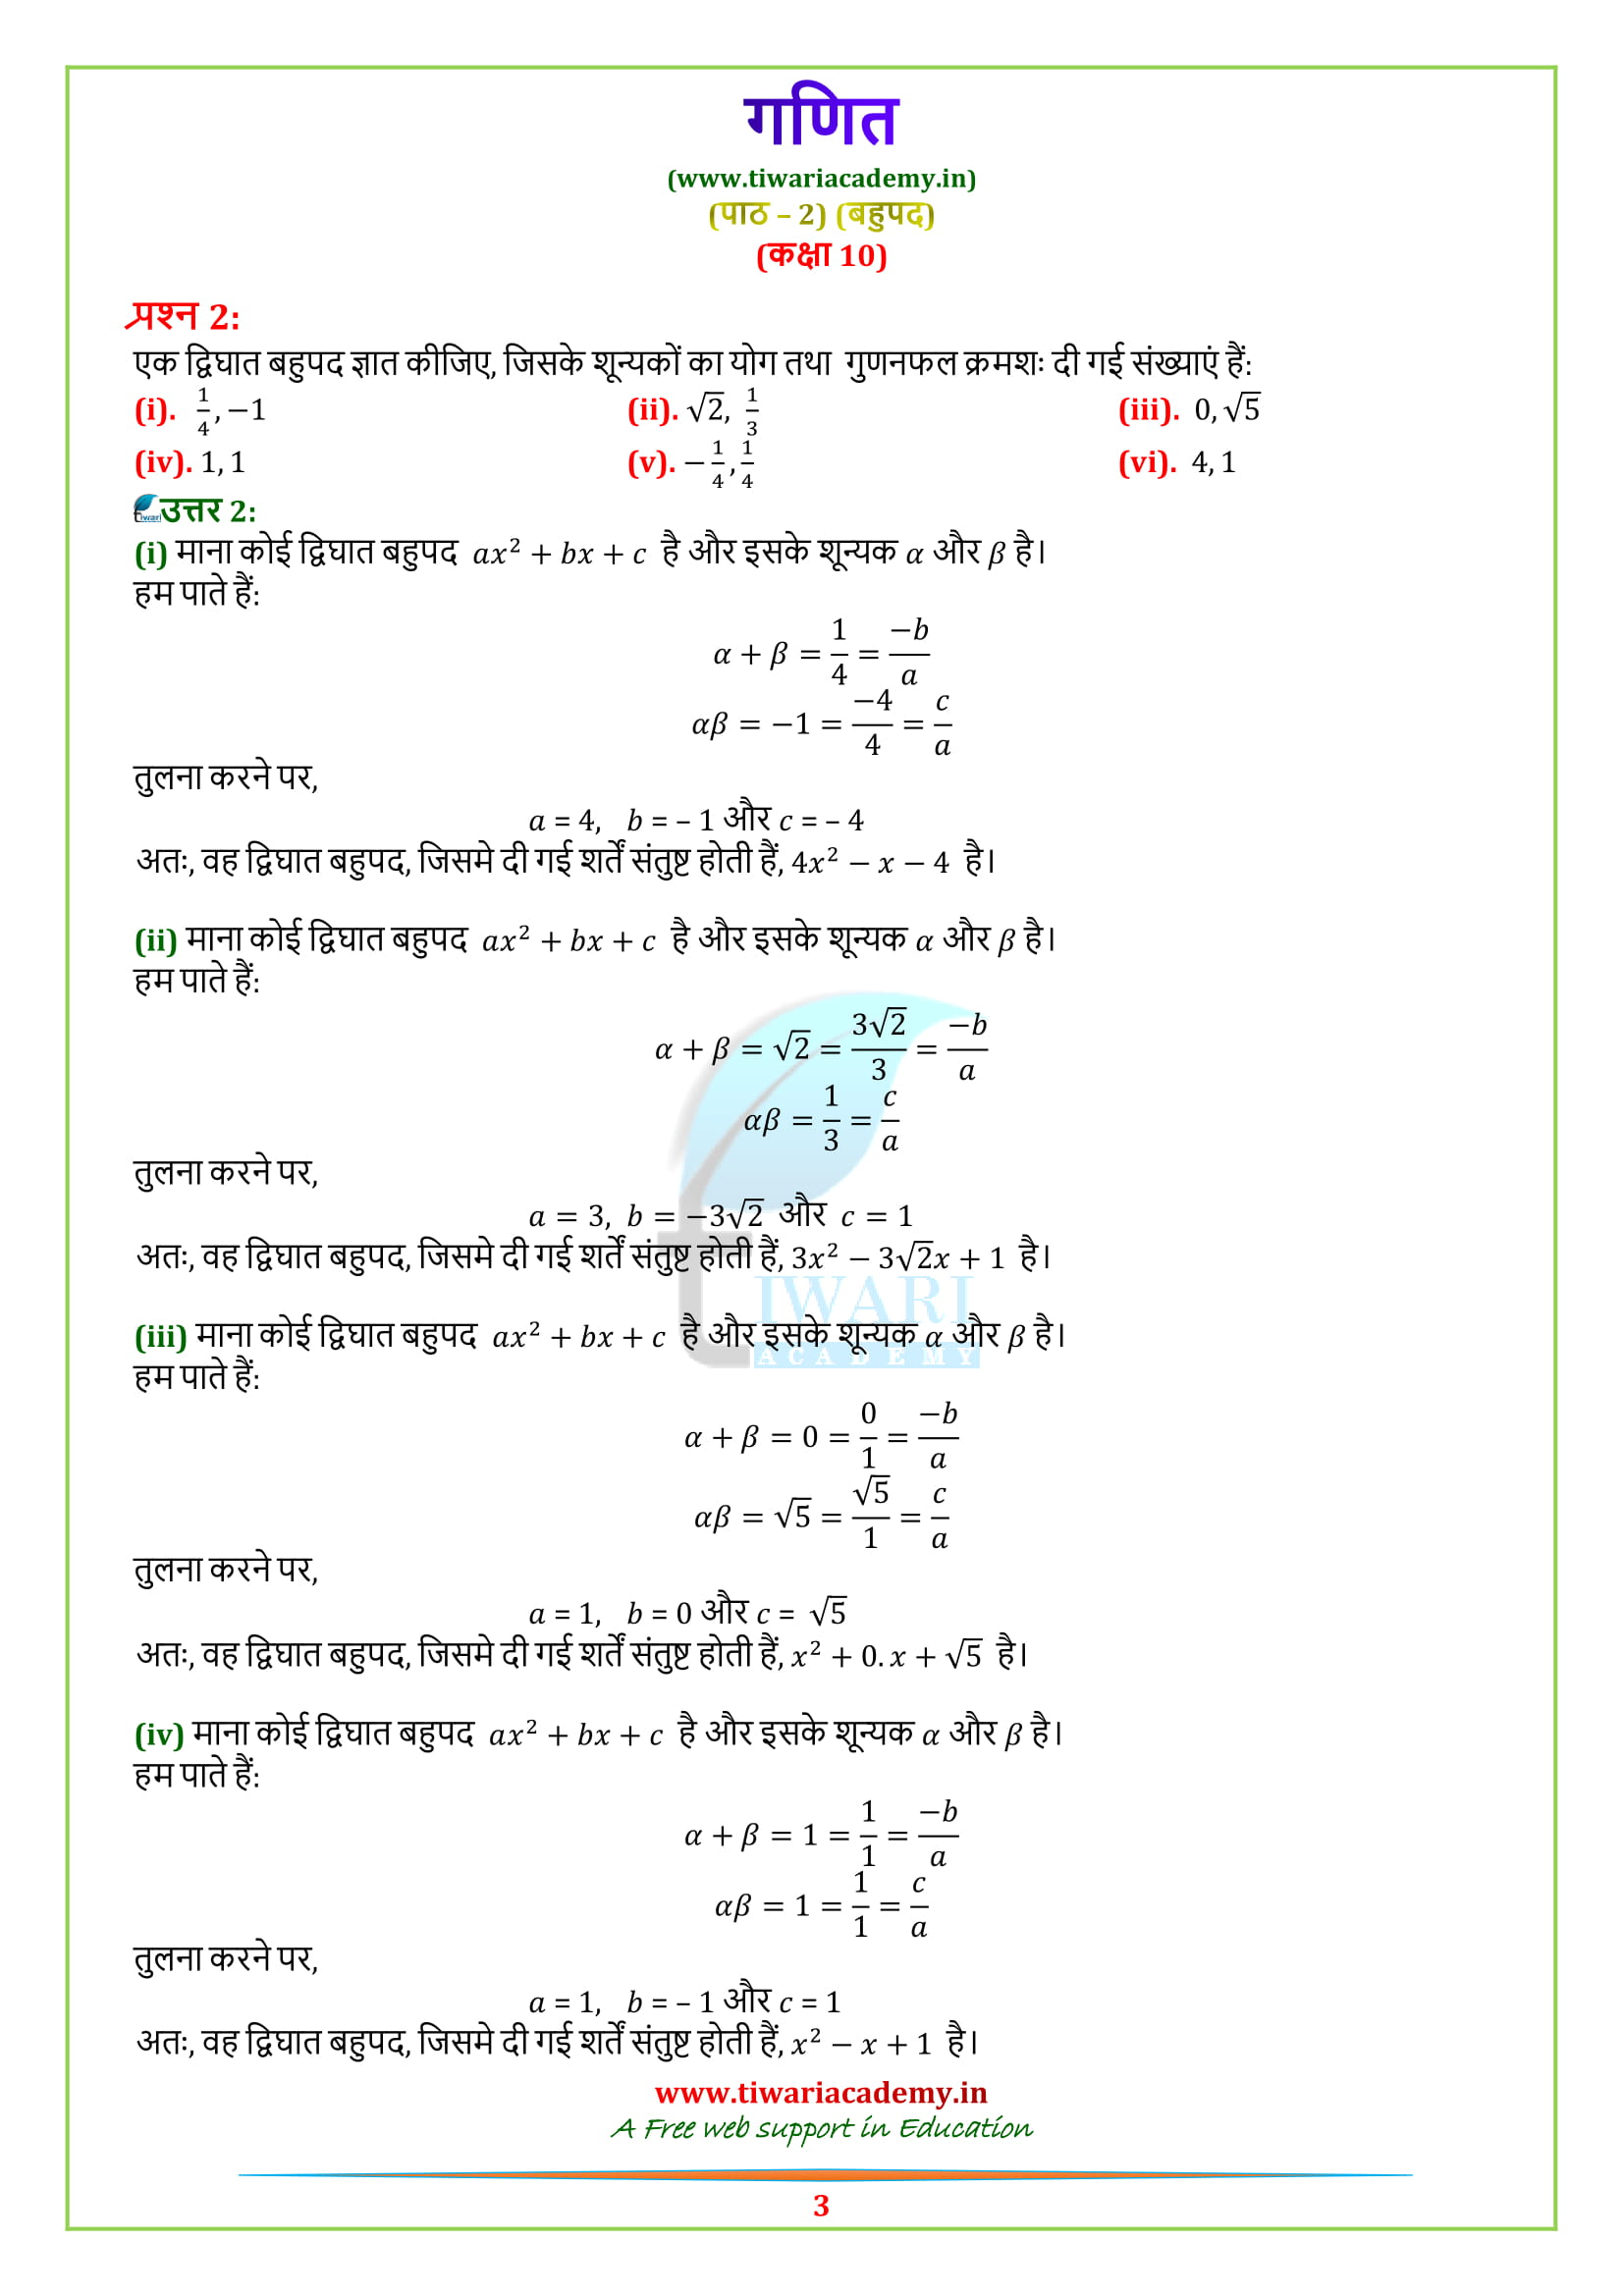 NCERT Solutions for class 10 maths Exercise 2.2 question 1 in hindi